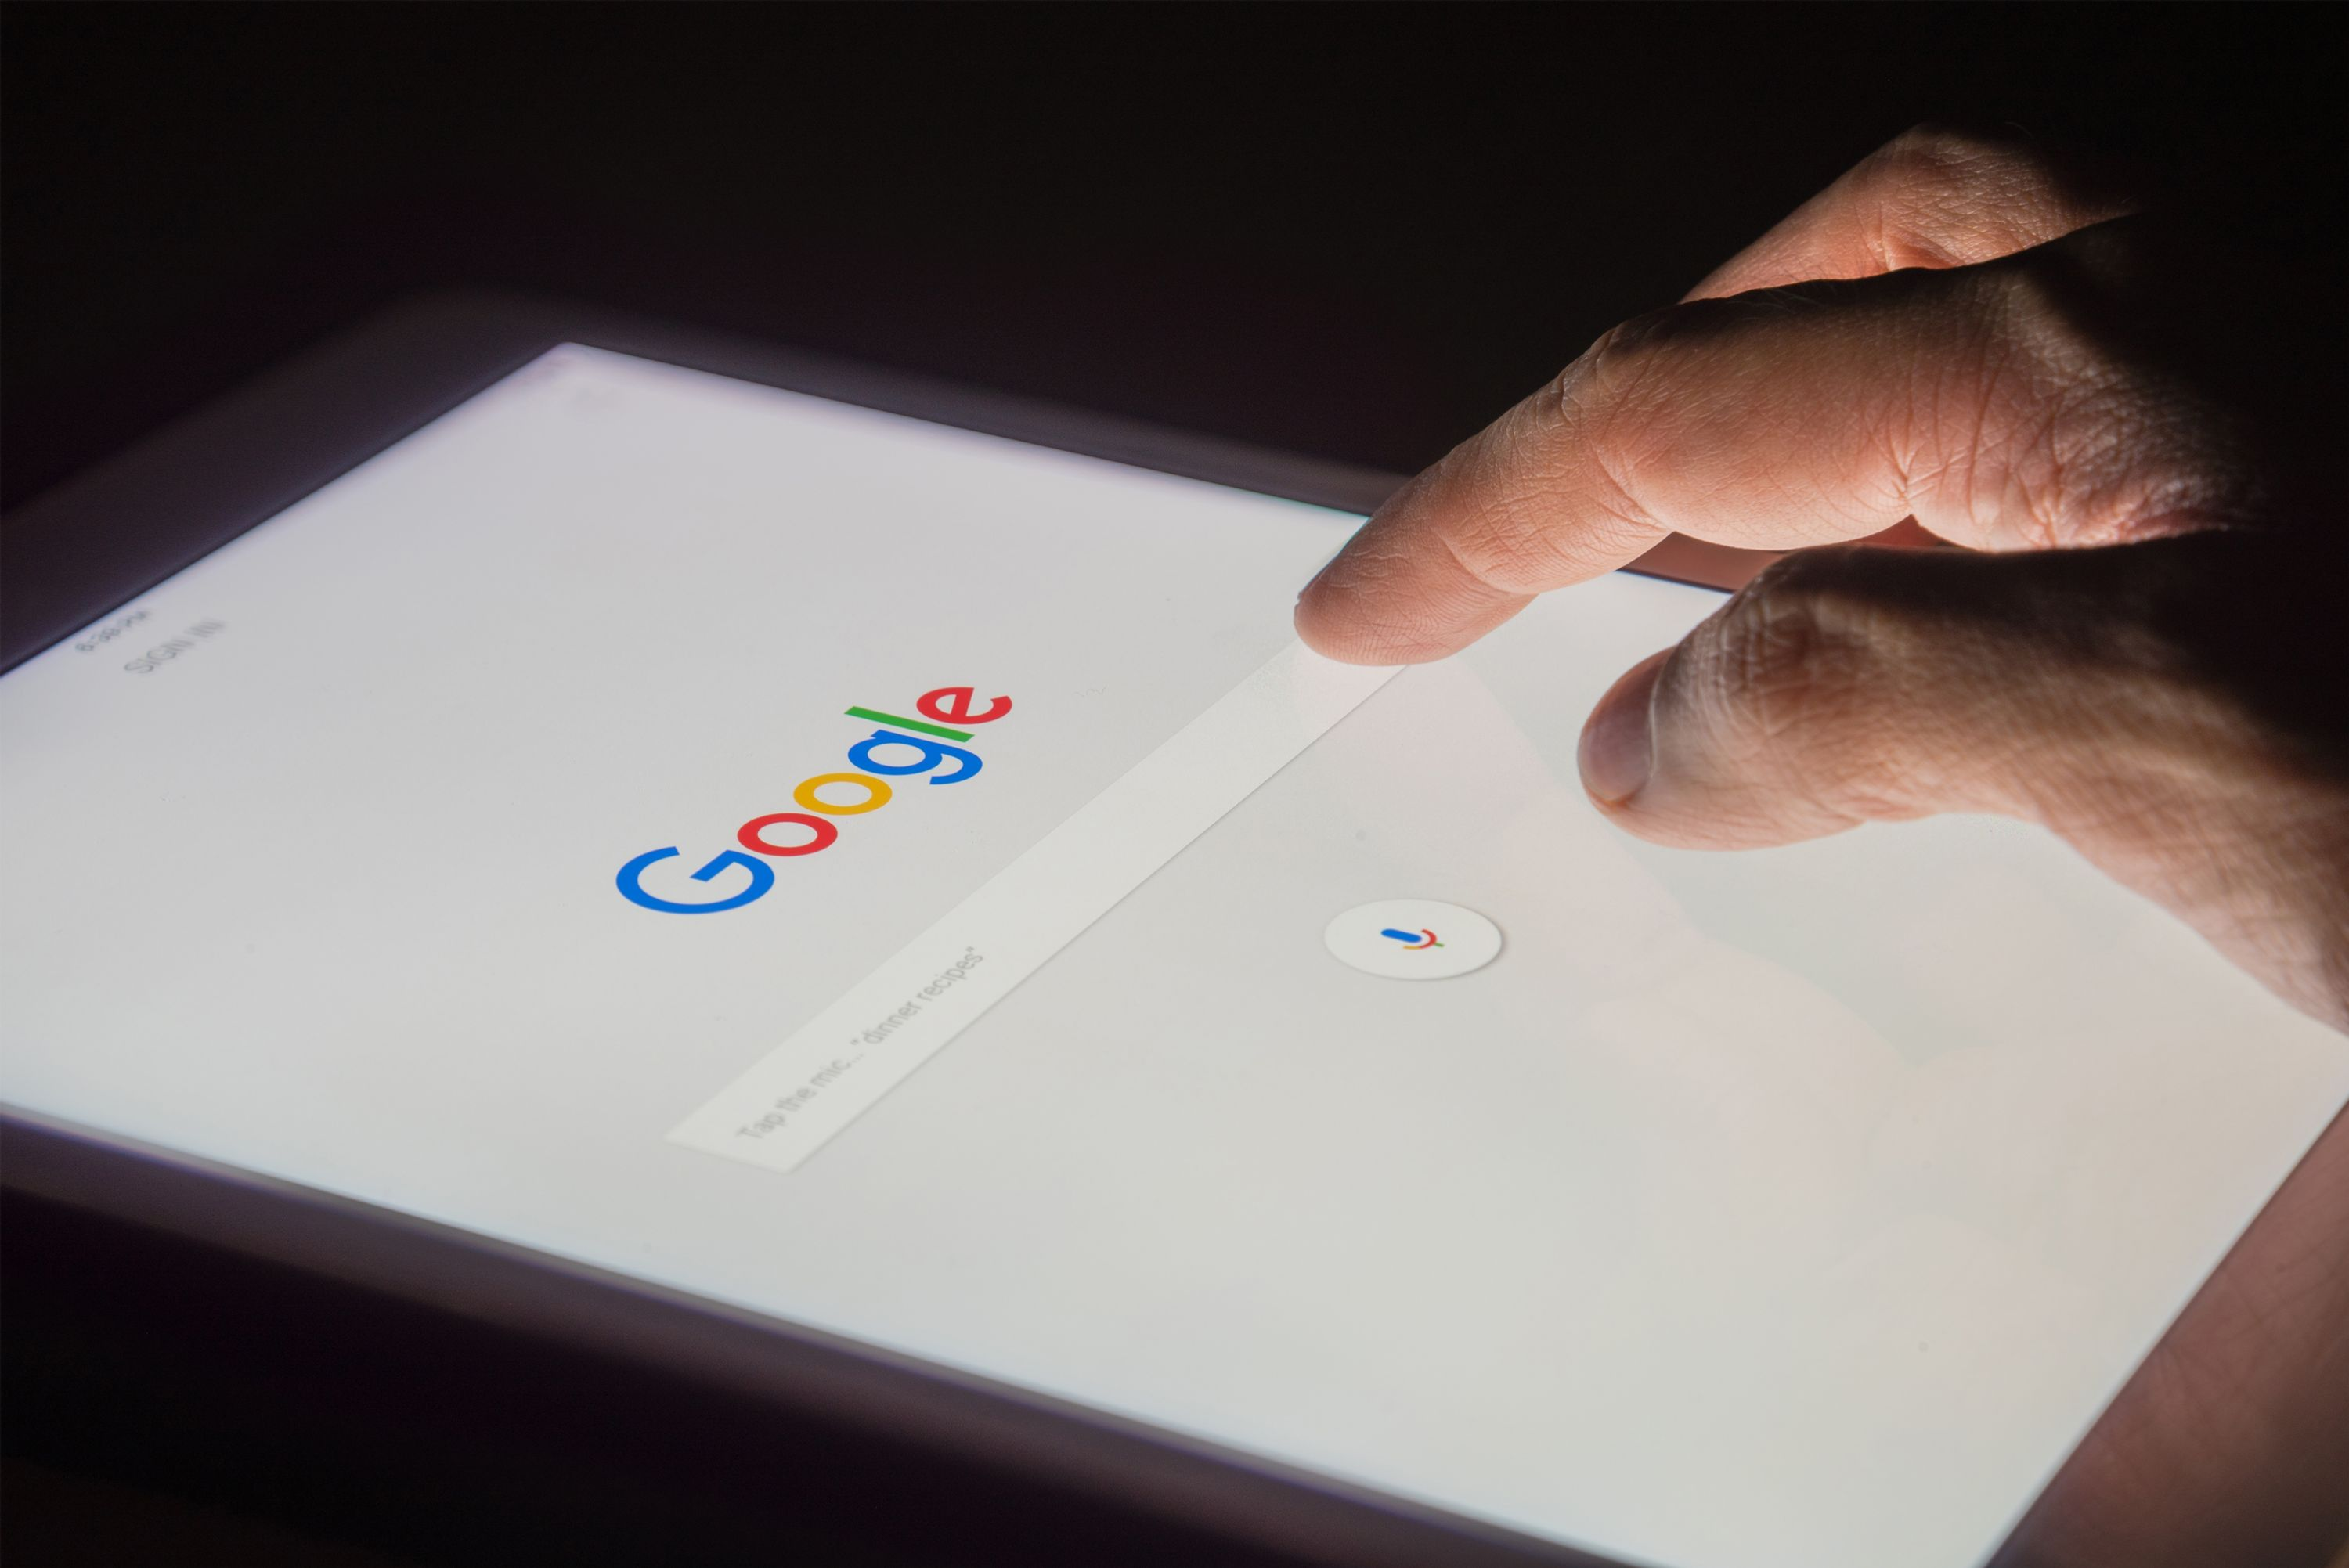 A tablet showing Google homepage with a hand tapping on the search field.